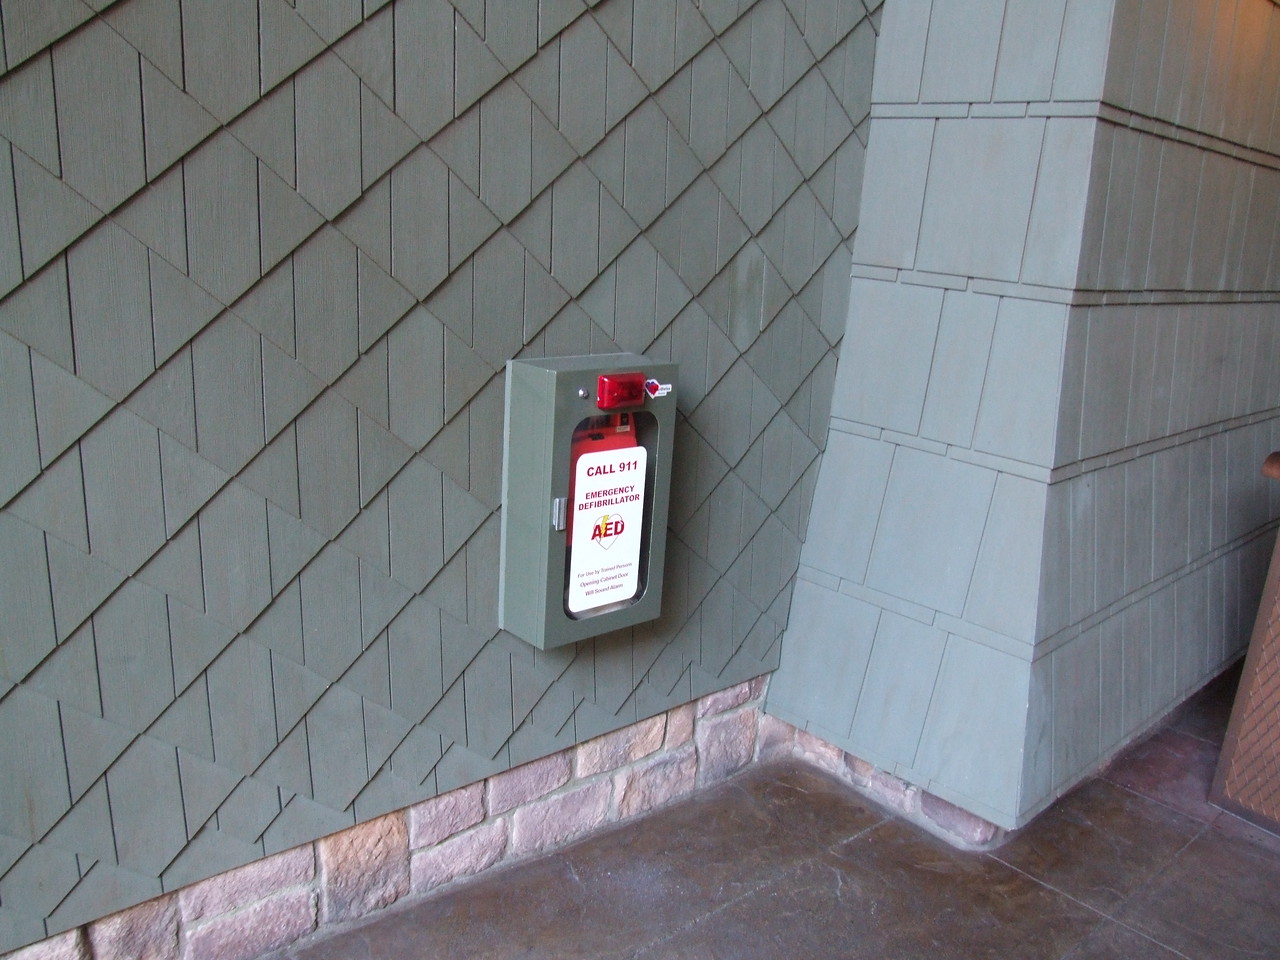 This one is near the Downtown DIsney entrance of the Grand Californian Hotel.